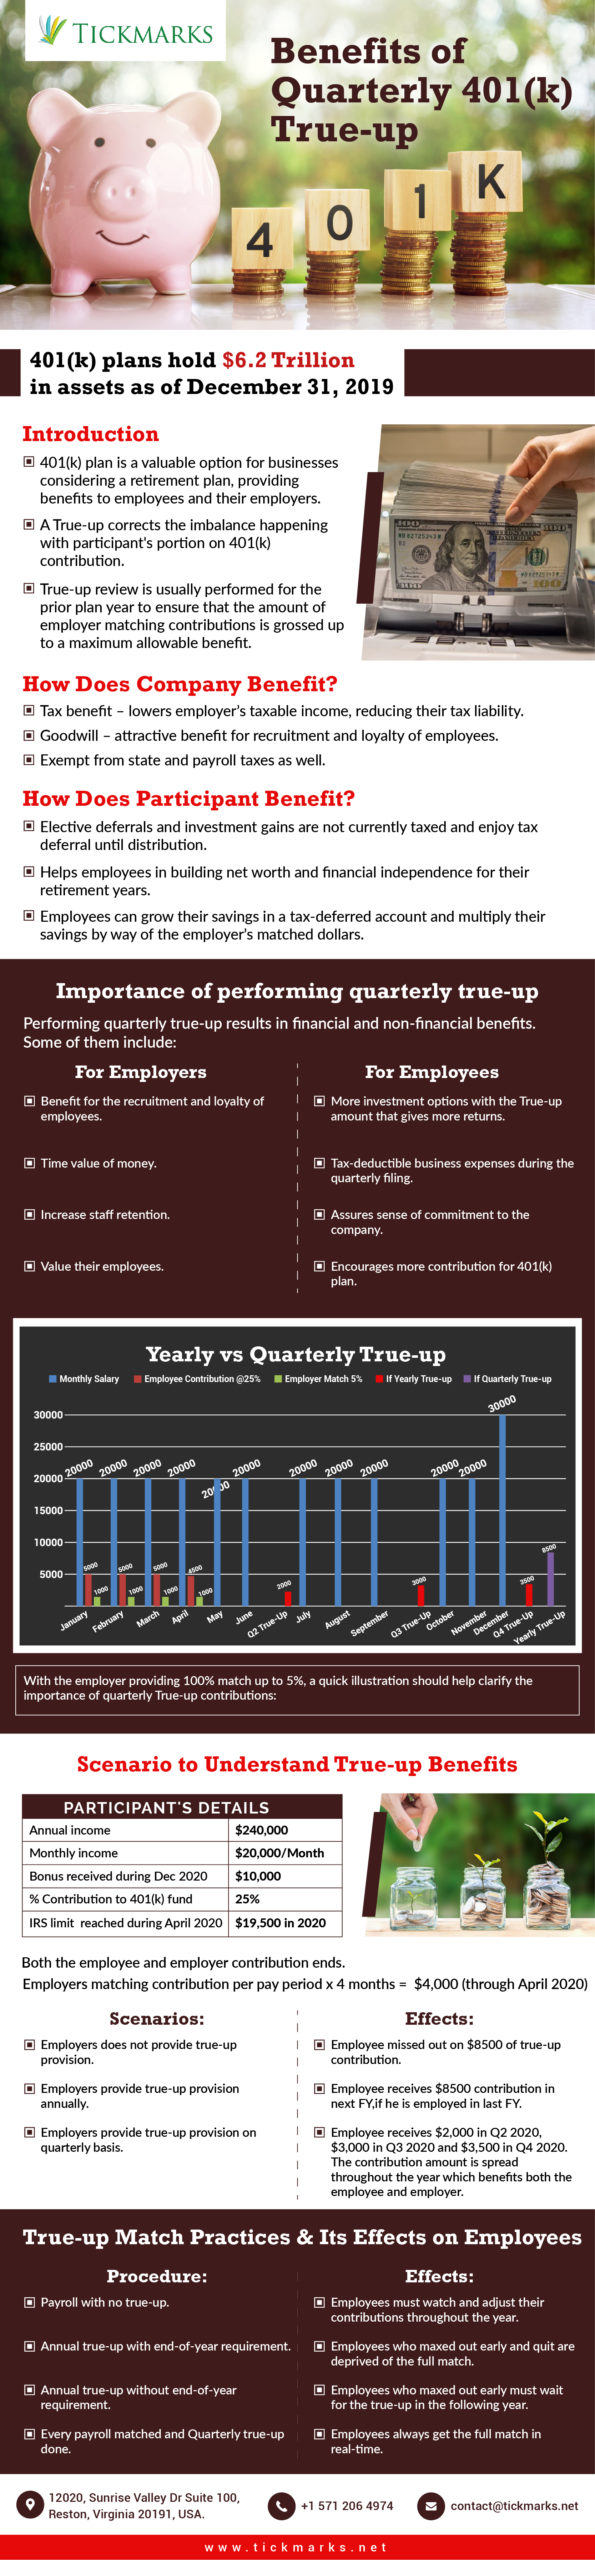 An infographics that explains the benefits of quarterly 401k true up with images and bar charts.